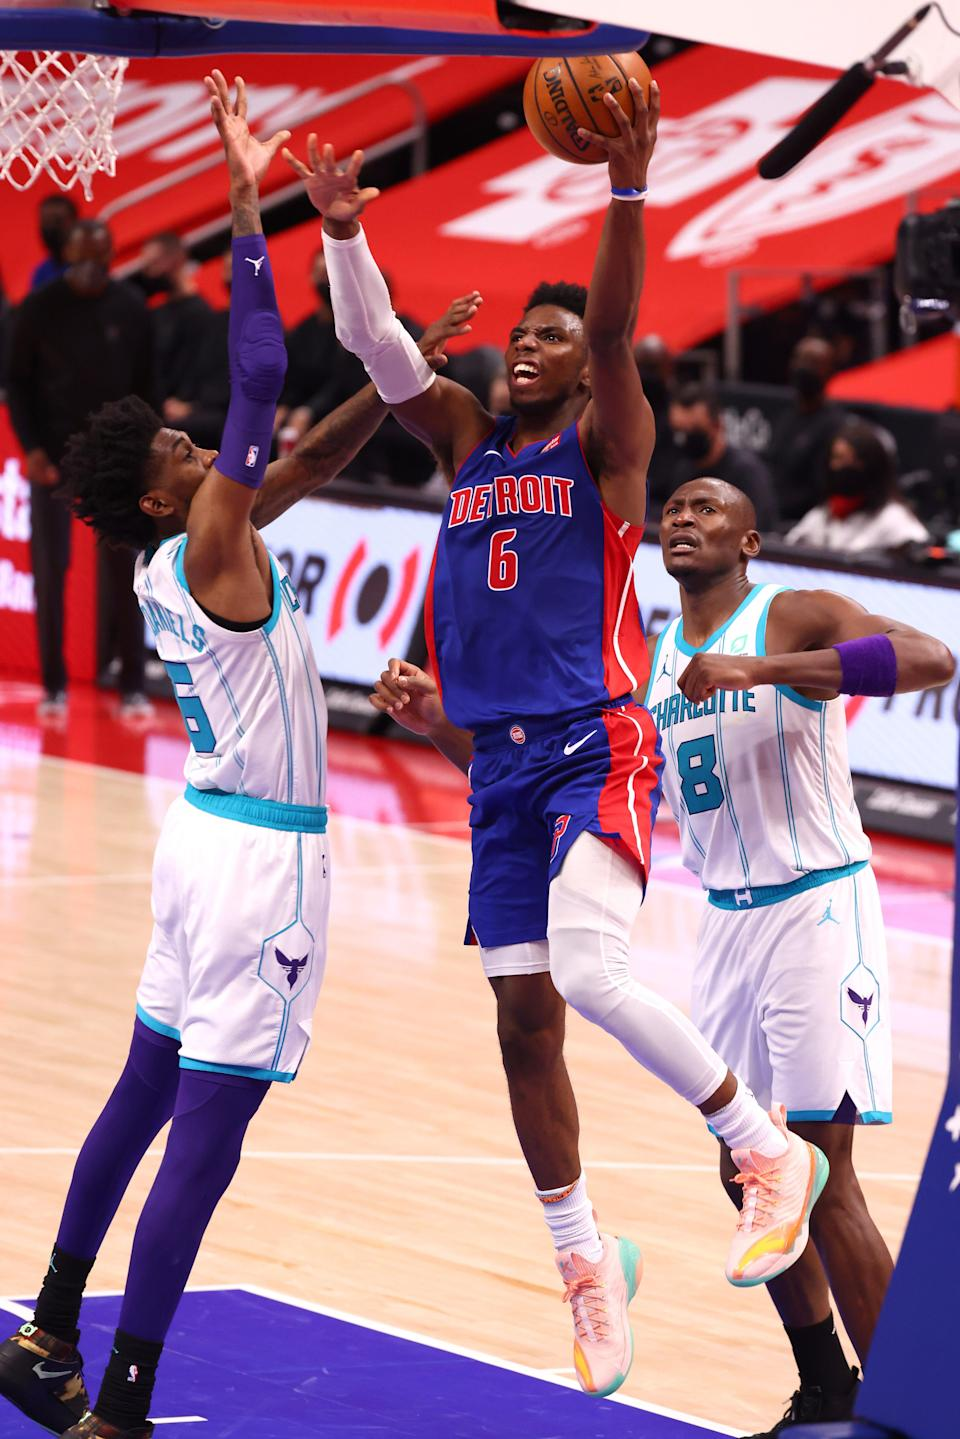 Hamidou Diallo of the Detroit Pistons drives to the basket past Jalen McDaniels of the Charlotte Hornets during the second half at Little Caesars Arena in Detroit on Tuesday, May 4, 2021.